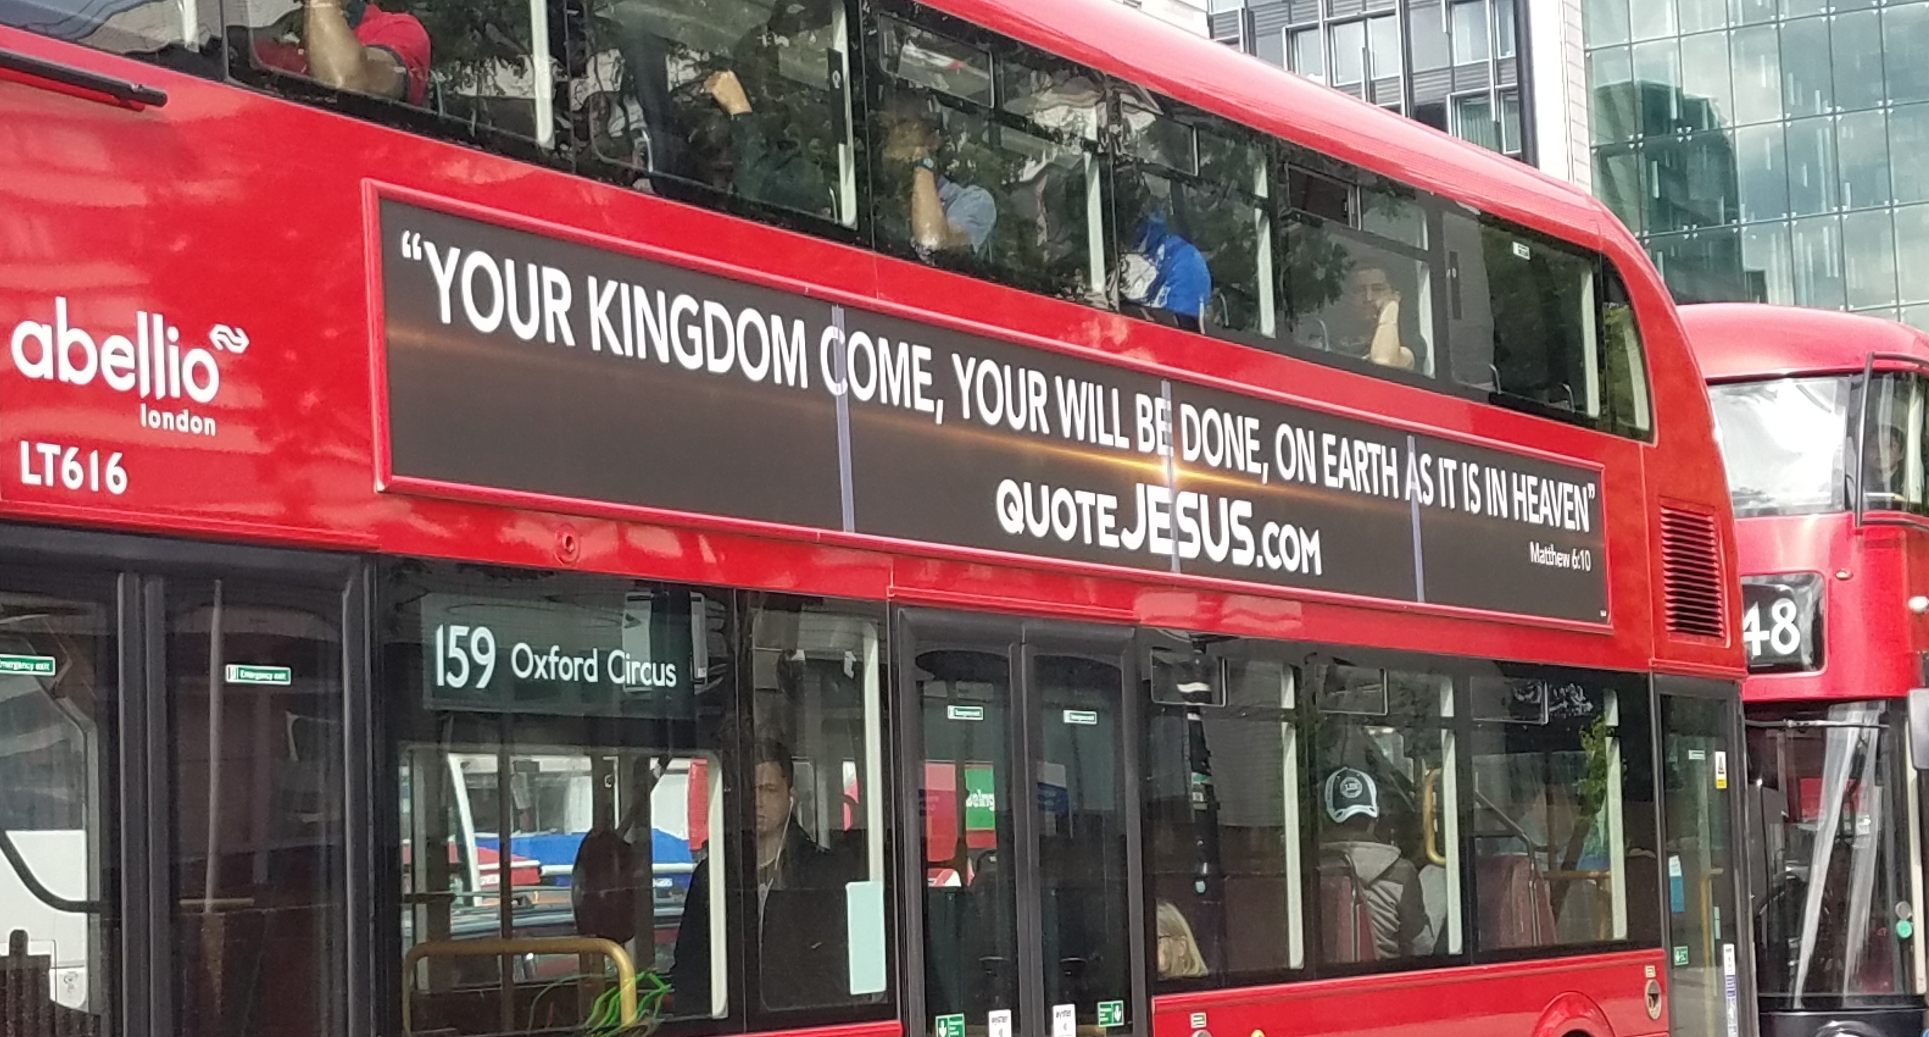 QuoteJesus.com filling the city with the words of Jesus